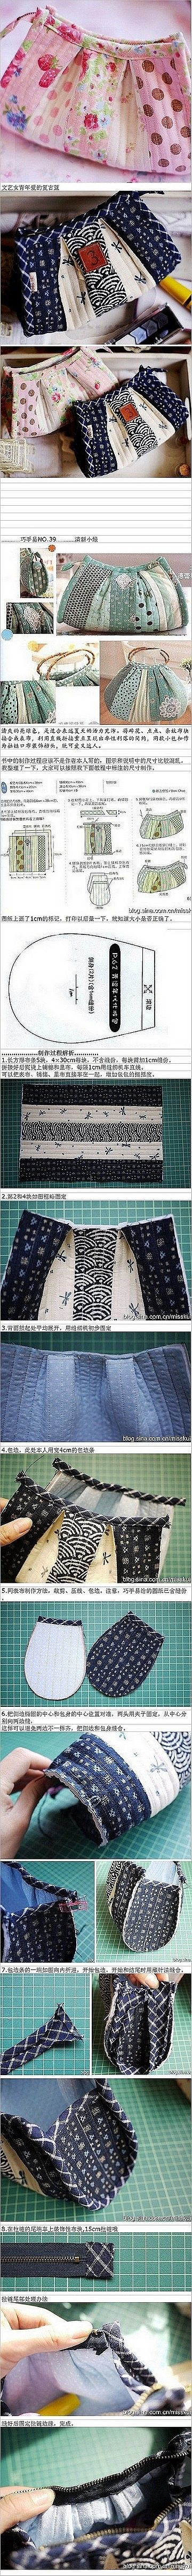 pleated zip pouch...maybe i should finally try this method - sew in sides instead of box corners, and sew in lining?